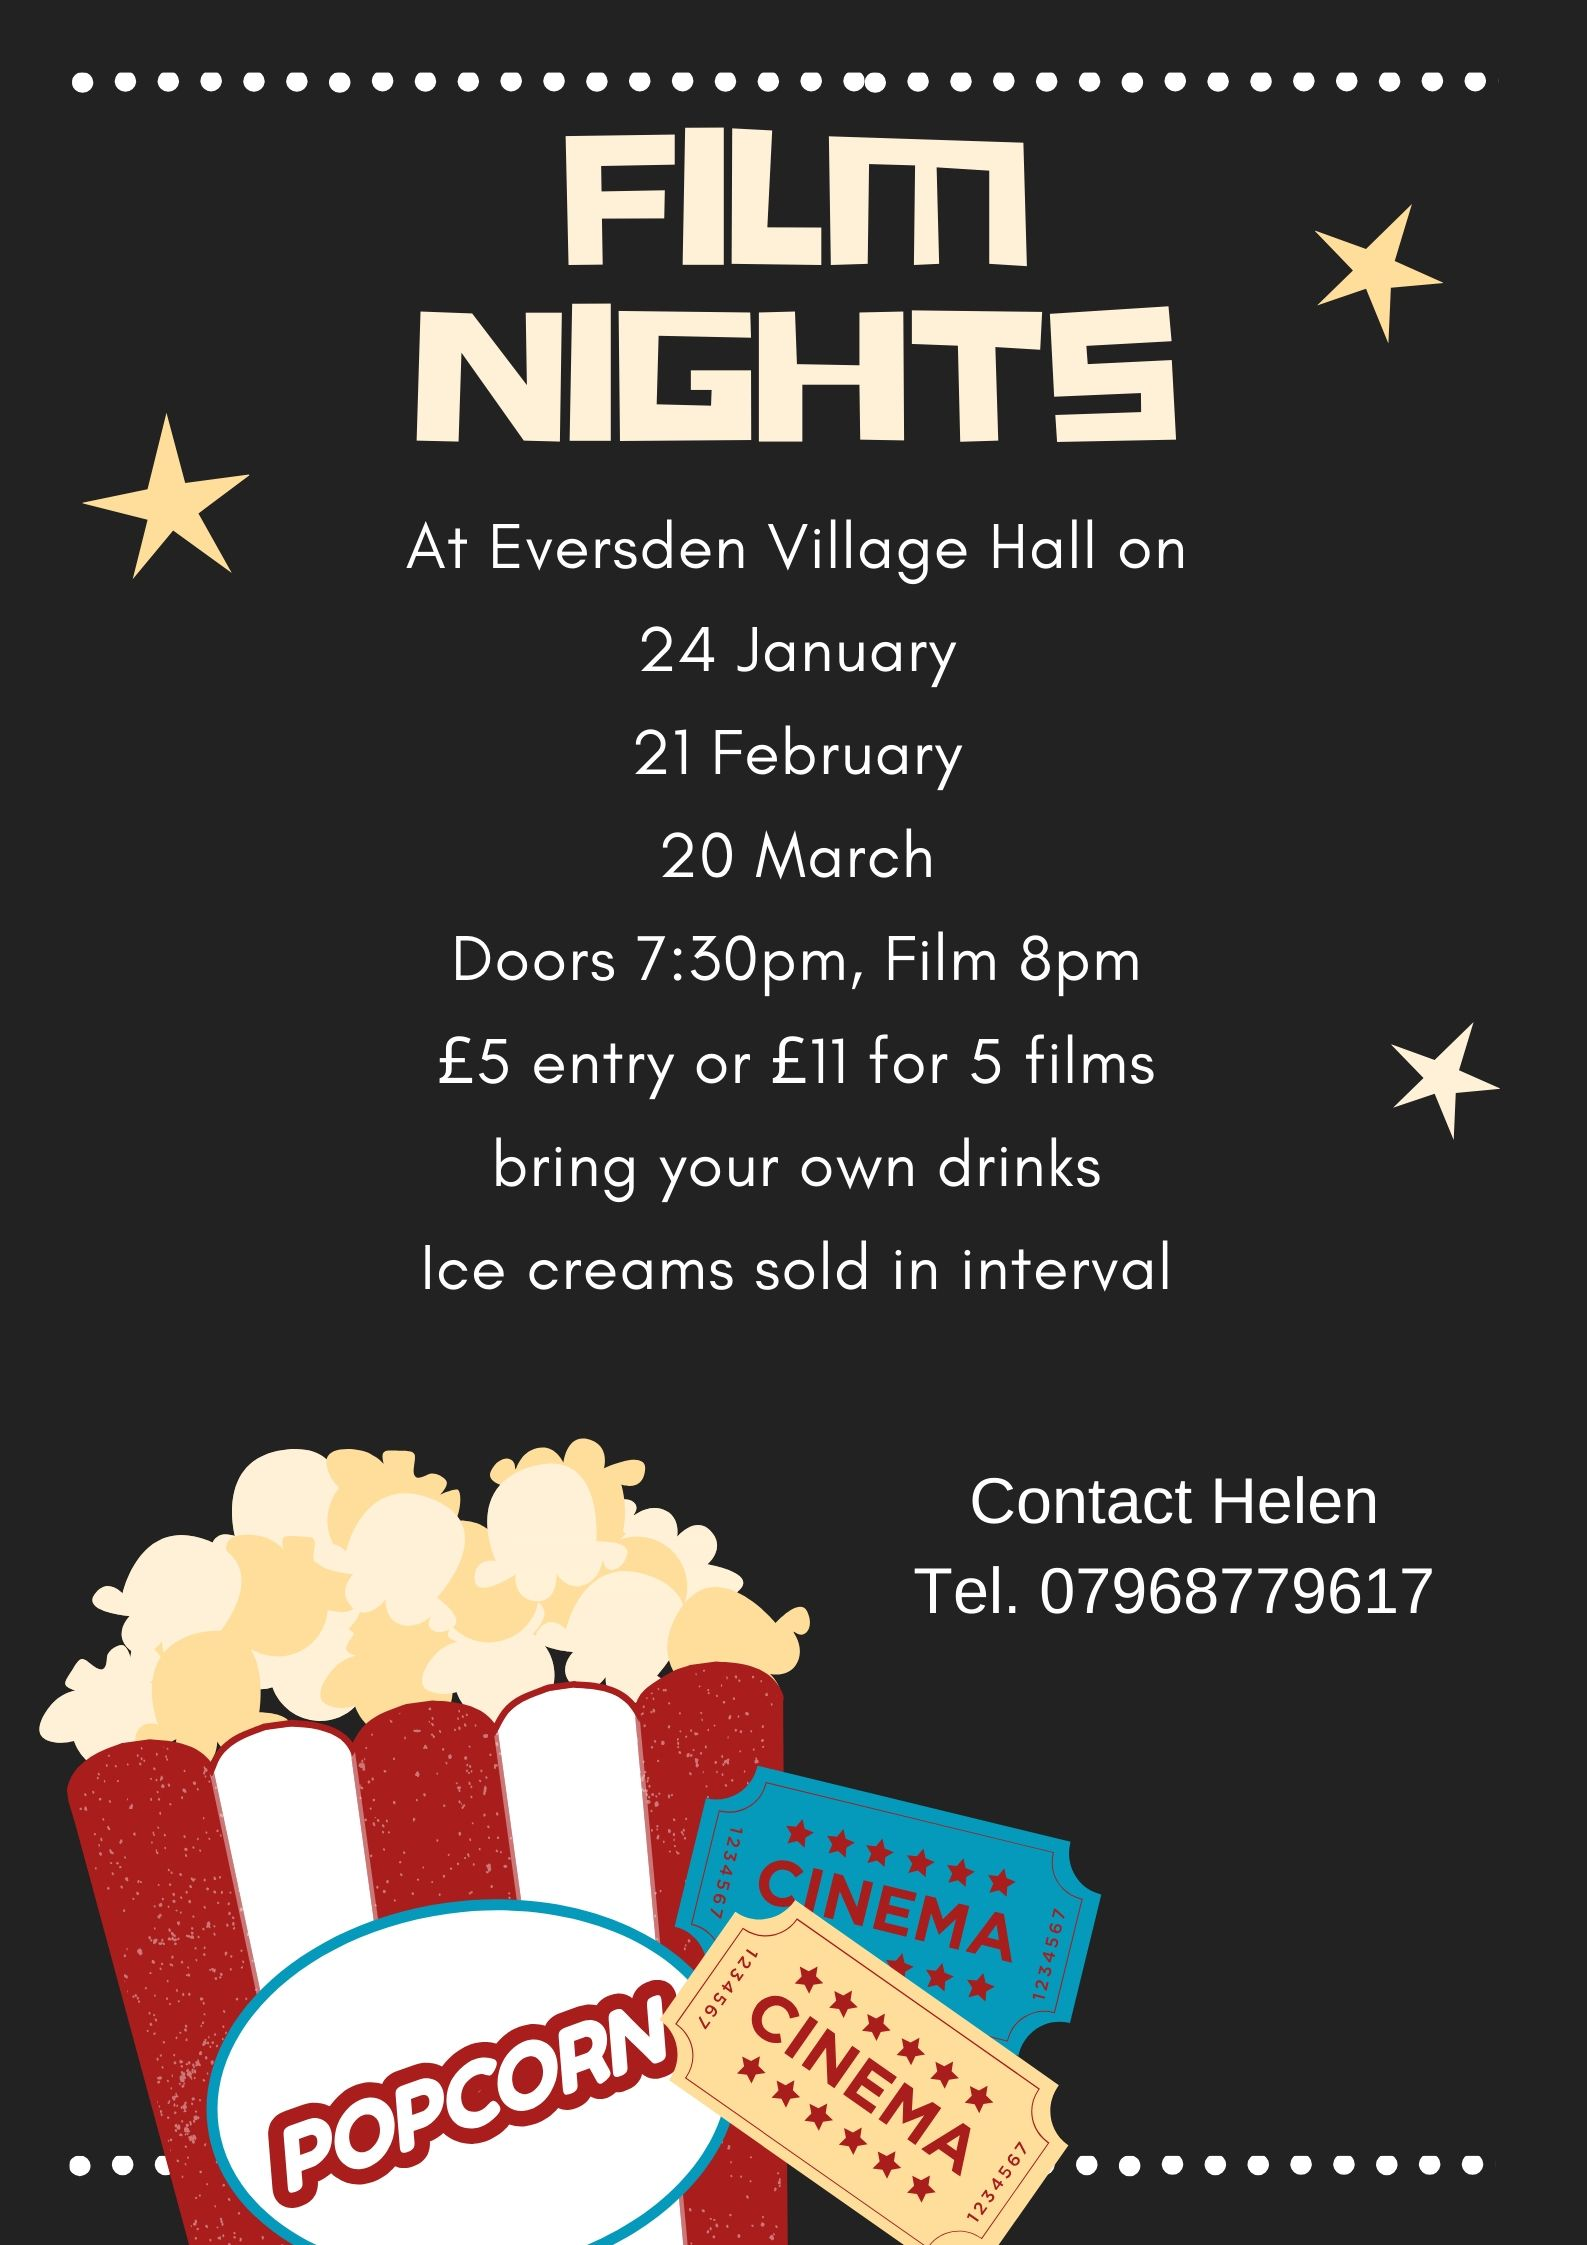 Film Night 24 January Doors open 7:30pm Film at 8pm